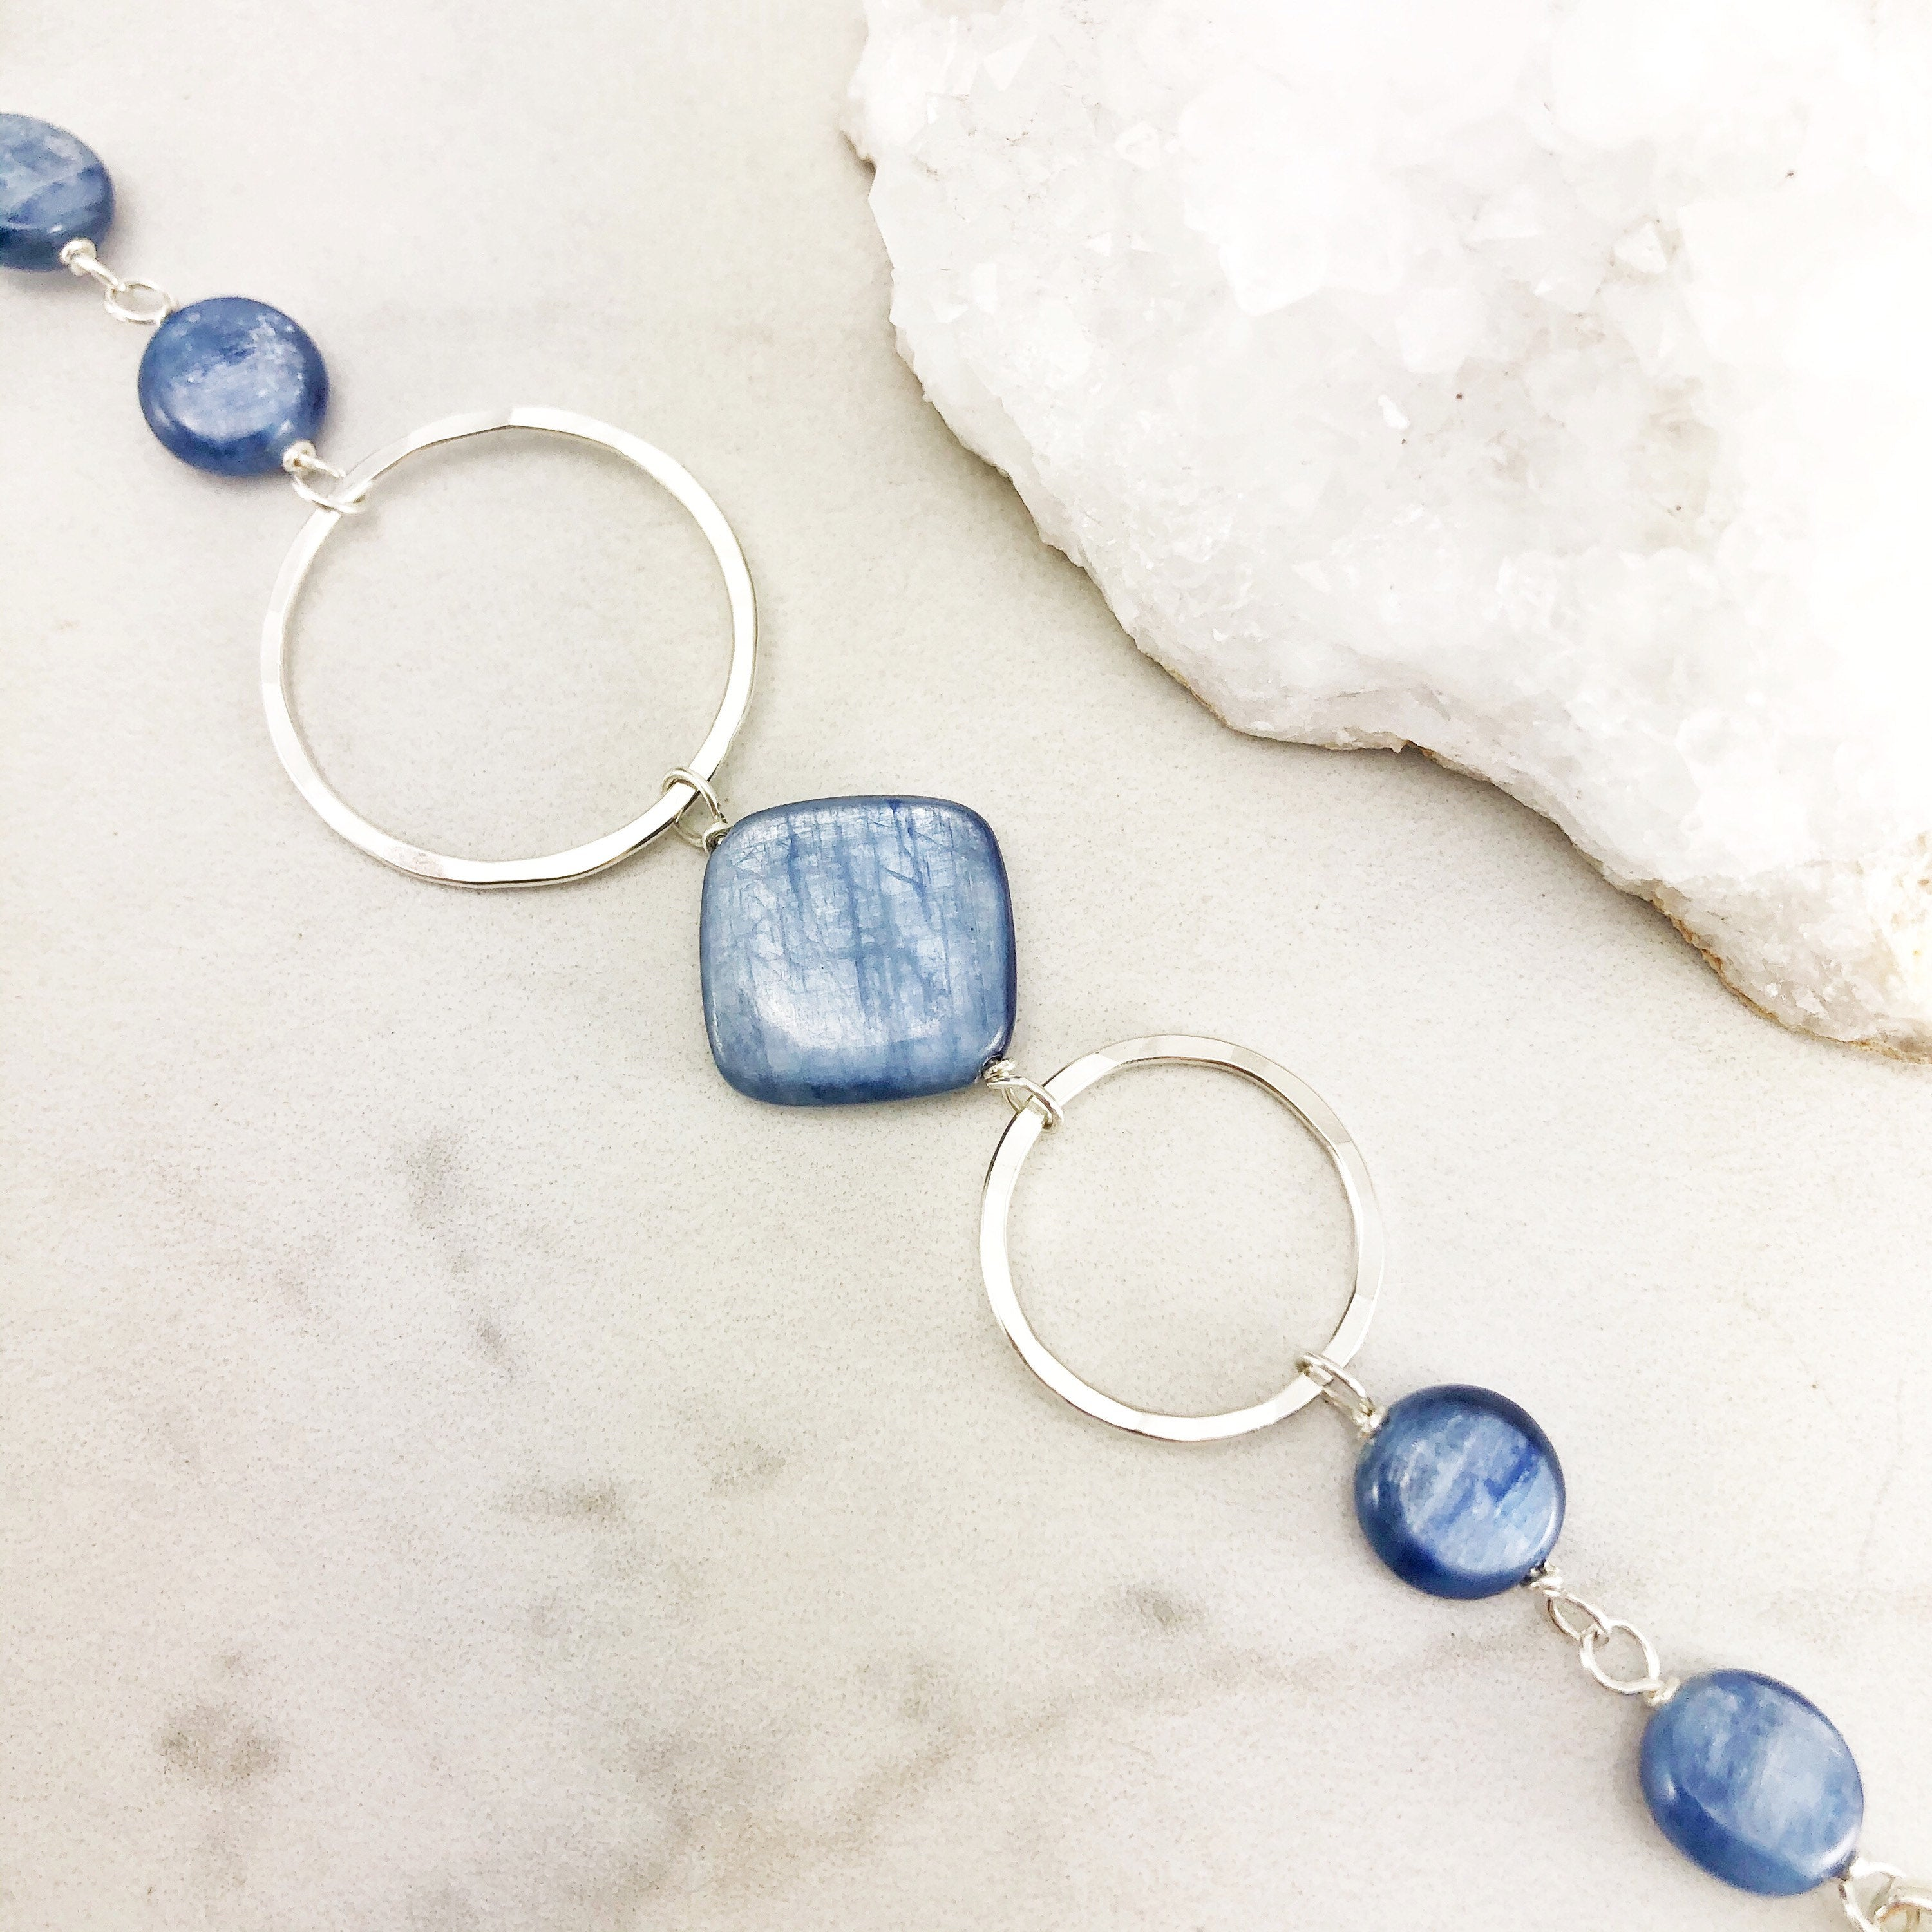 Hammered Sterling Silver Circles Bracelet with Kyanite